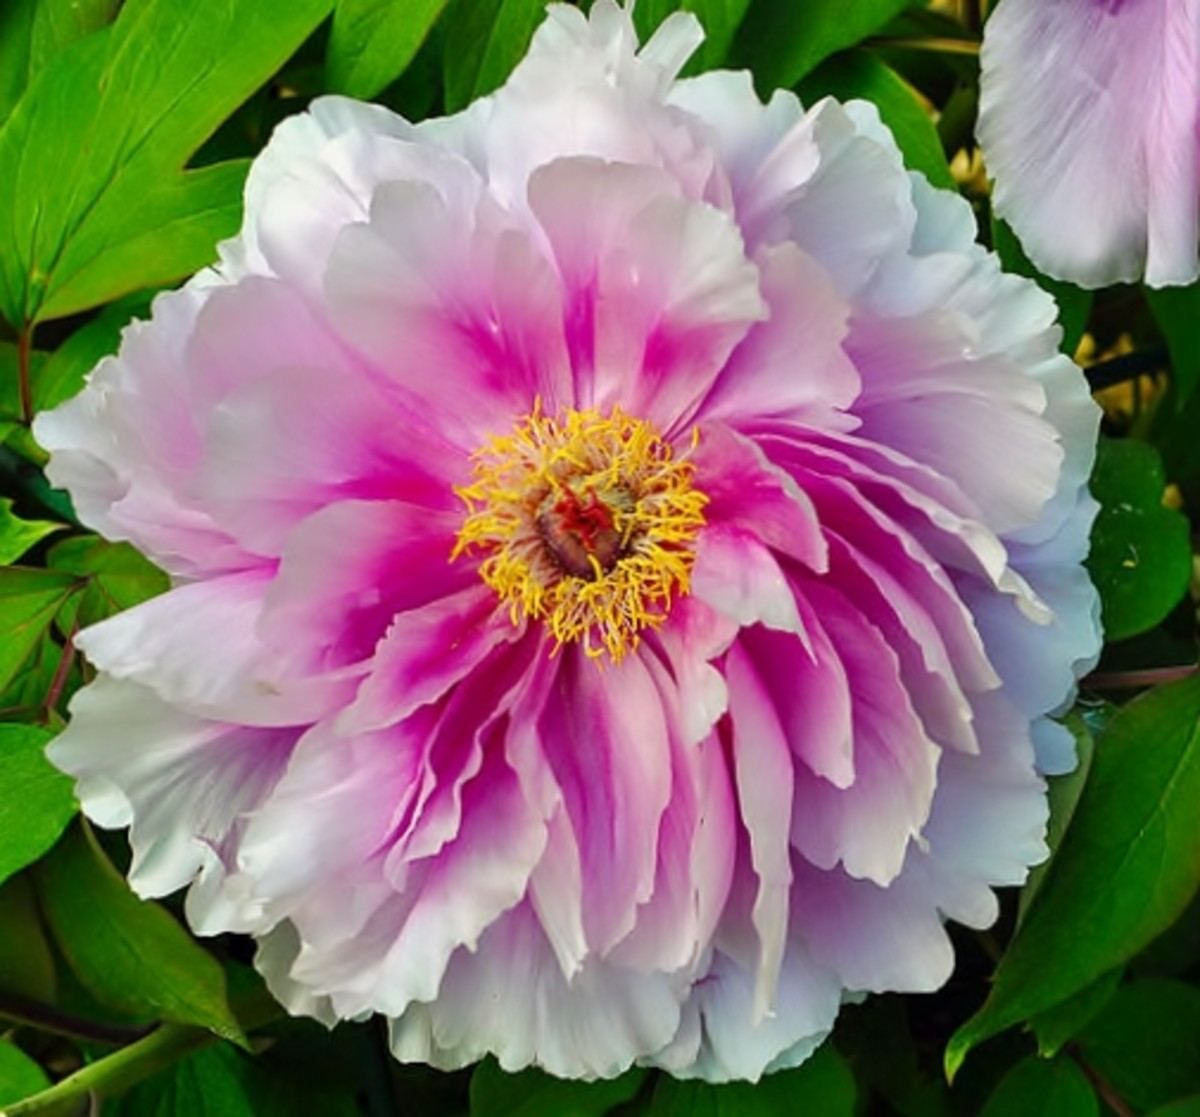 The tree peony 'Shin Kamata' on display at Parc de Bagatelle at 16th arrondissement of Paris.